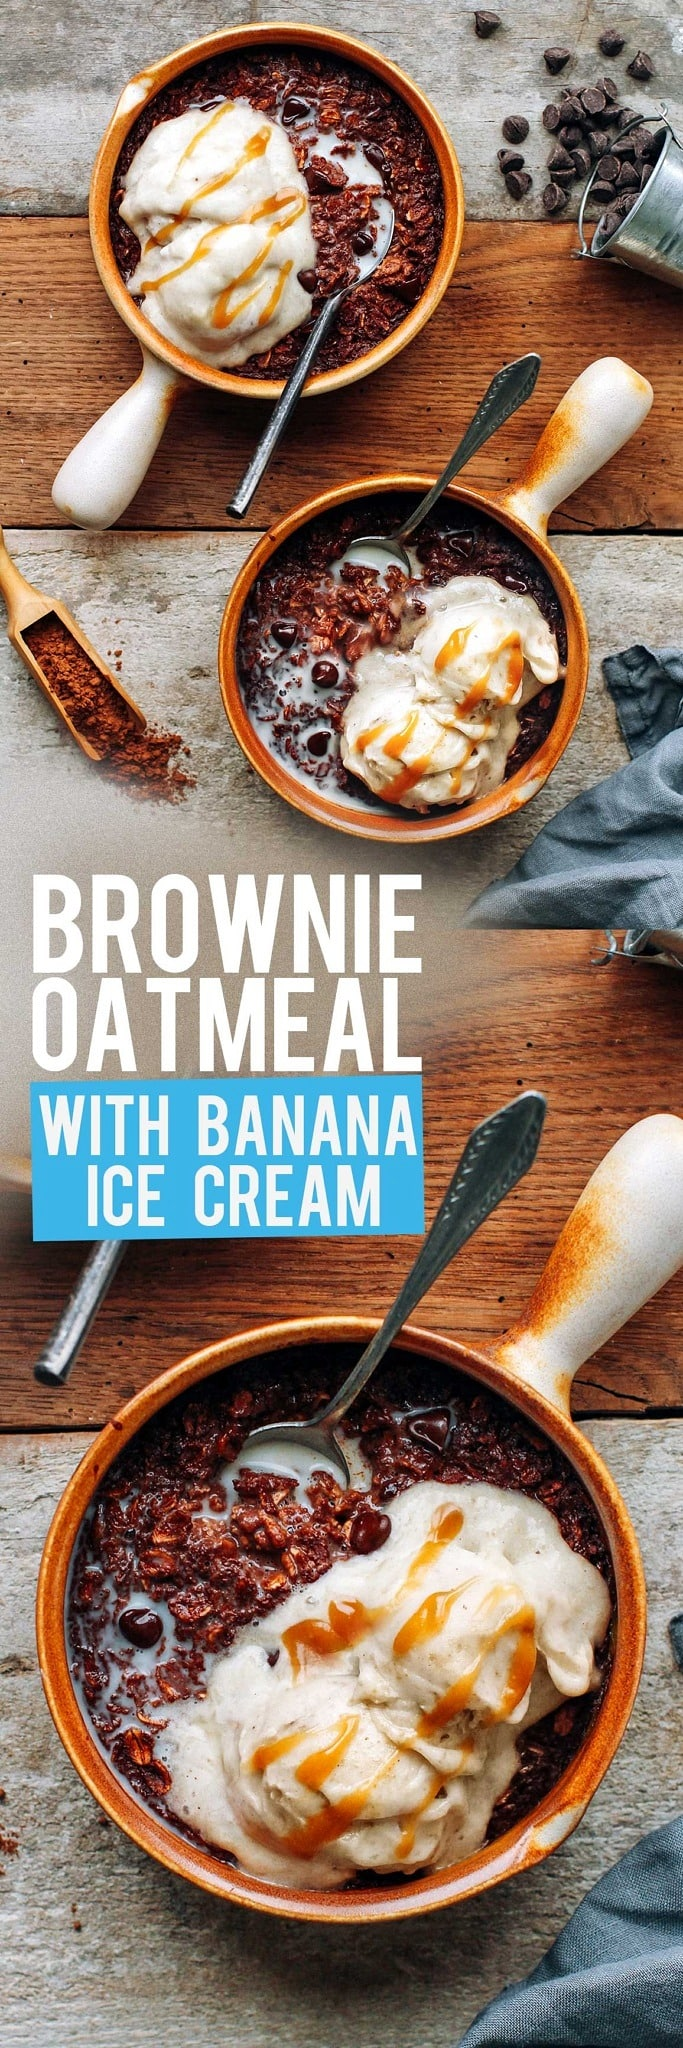 Brownie Oatmeal with Banana Ice cream (Hot & Cold!)